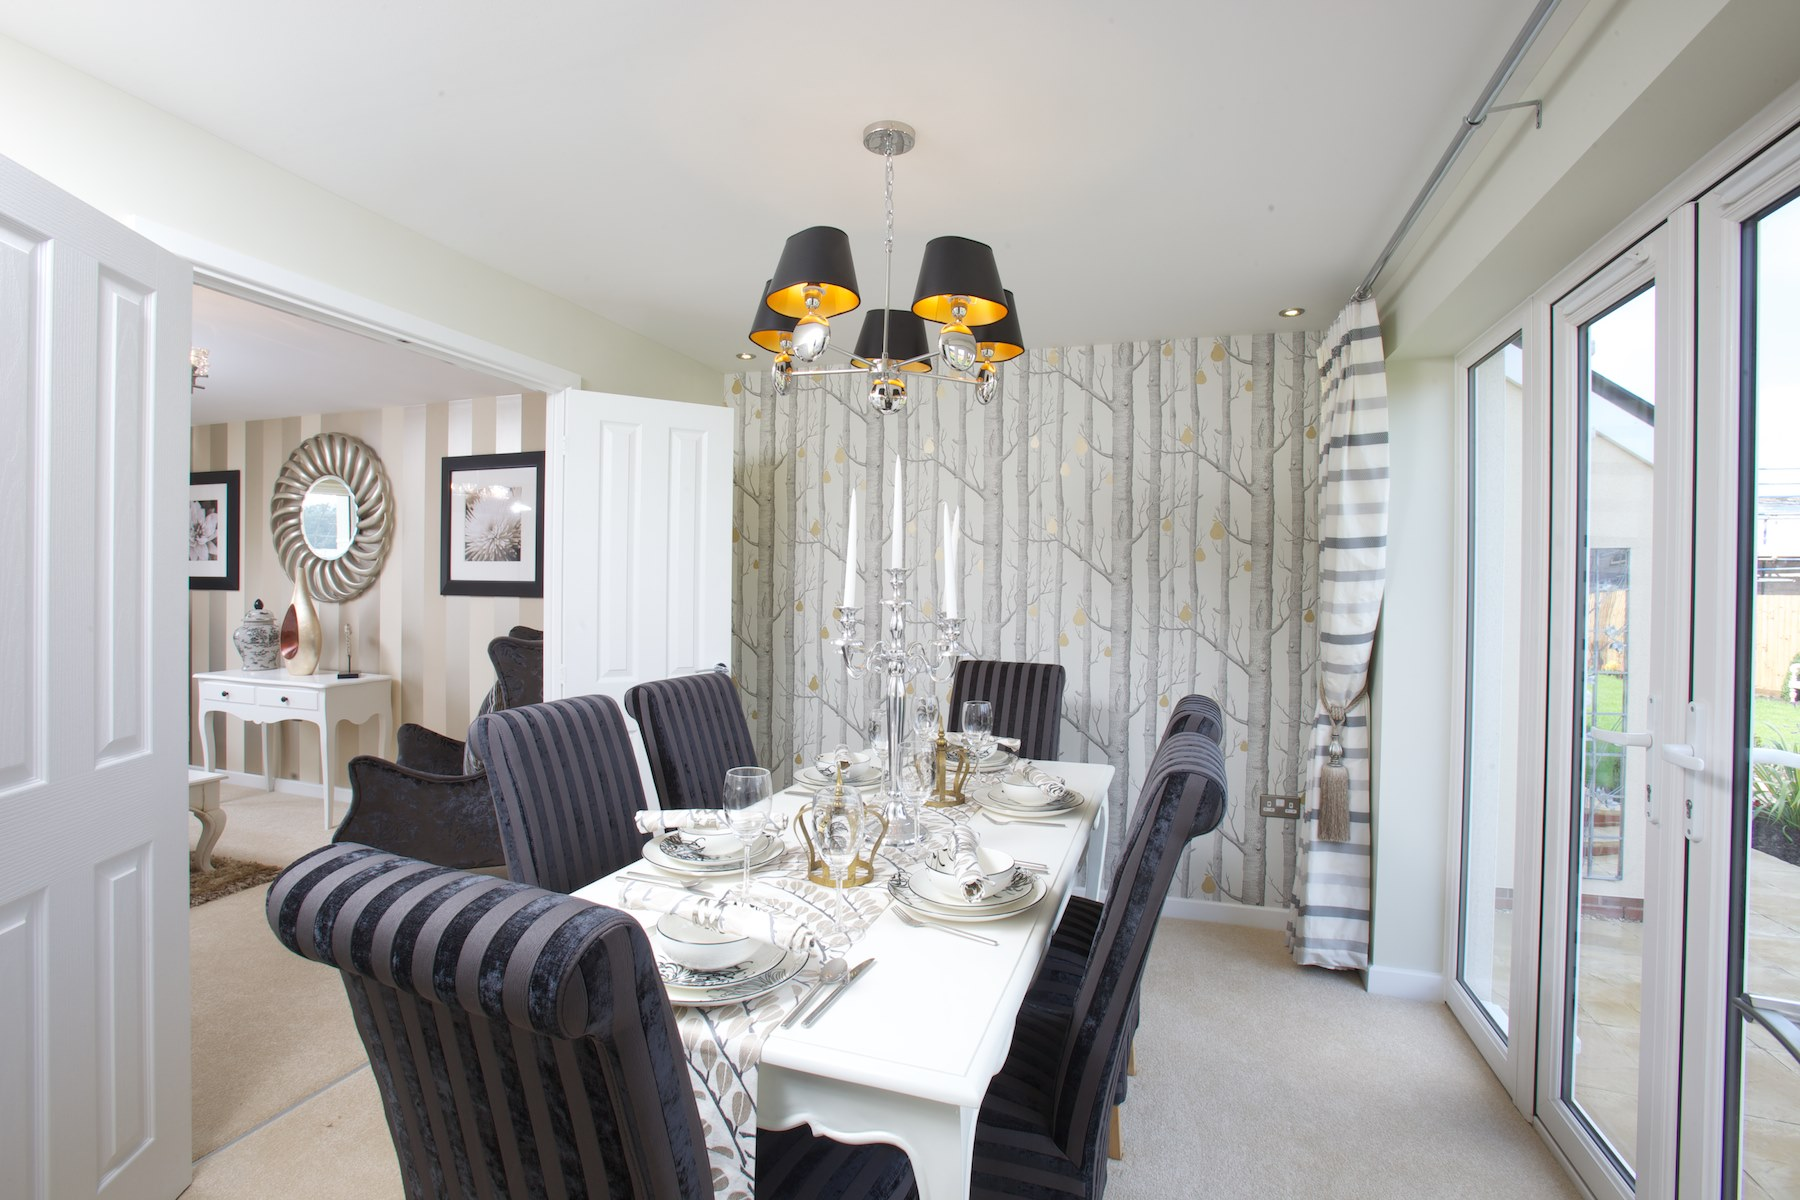 Lyde green new homes in emersons green taylor wimpey for Greens dining room zetland road bristol